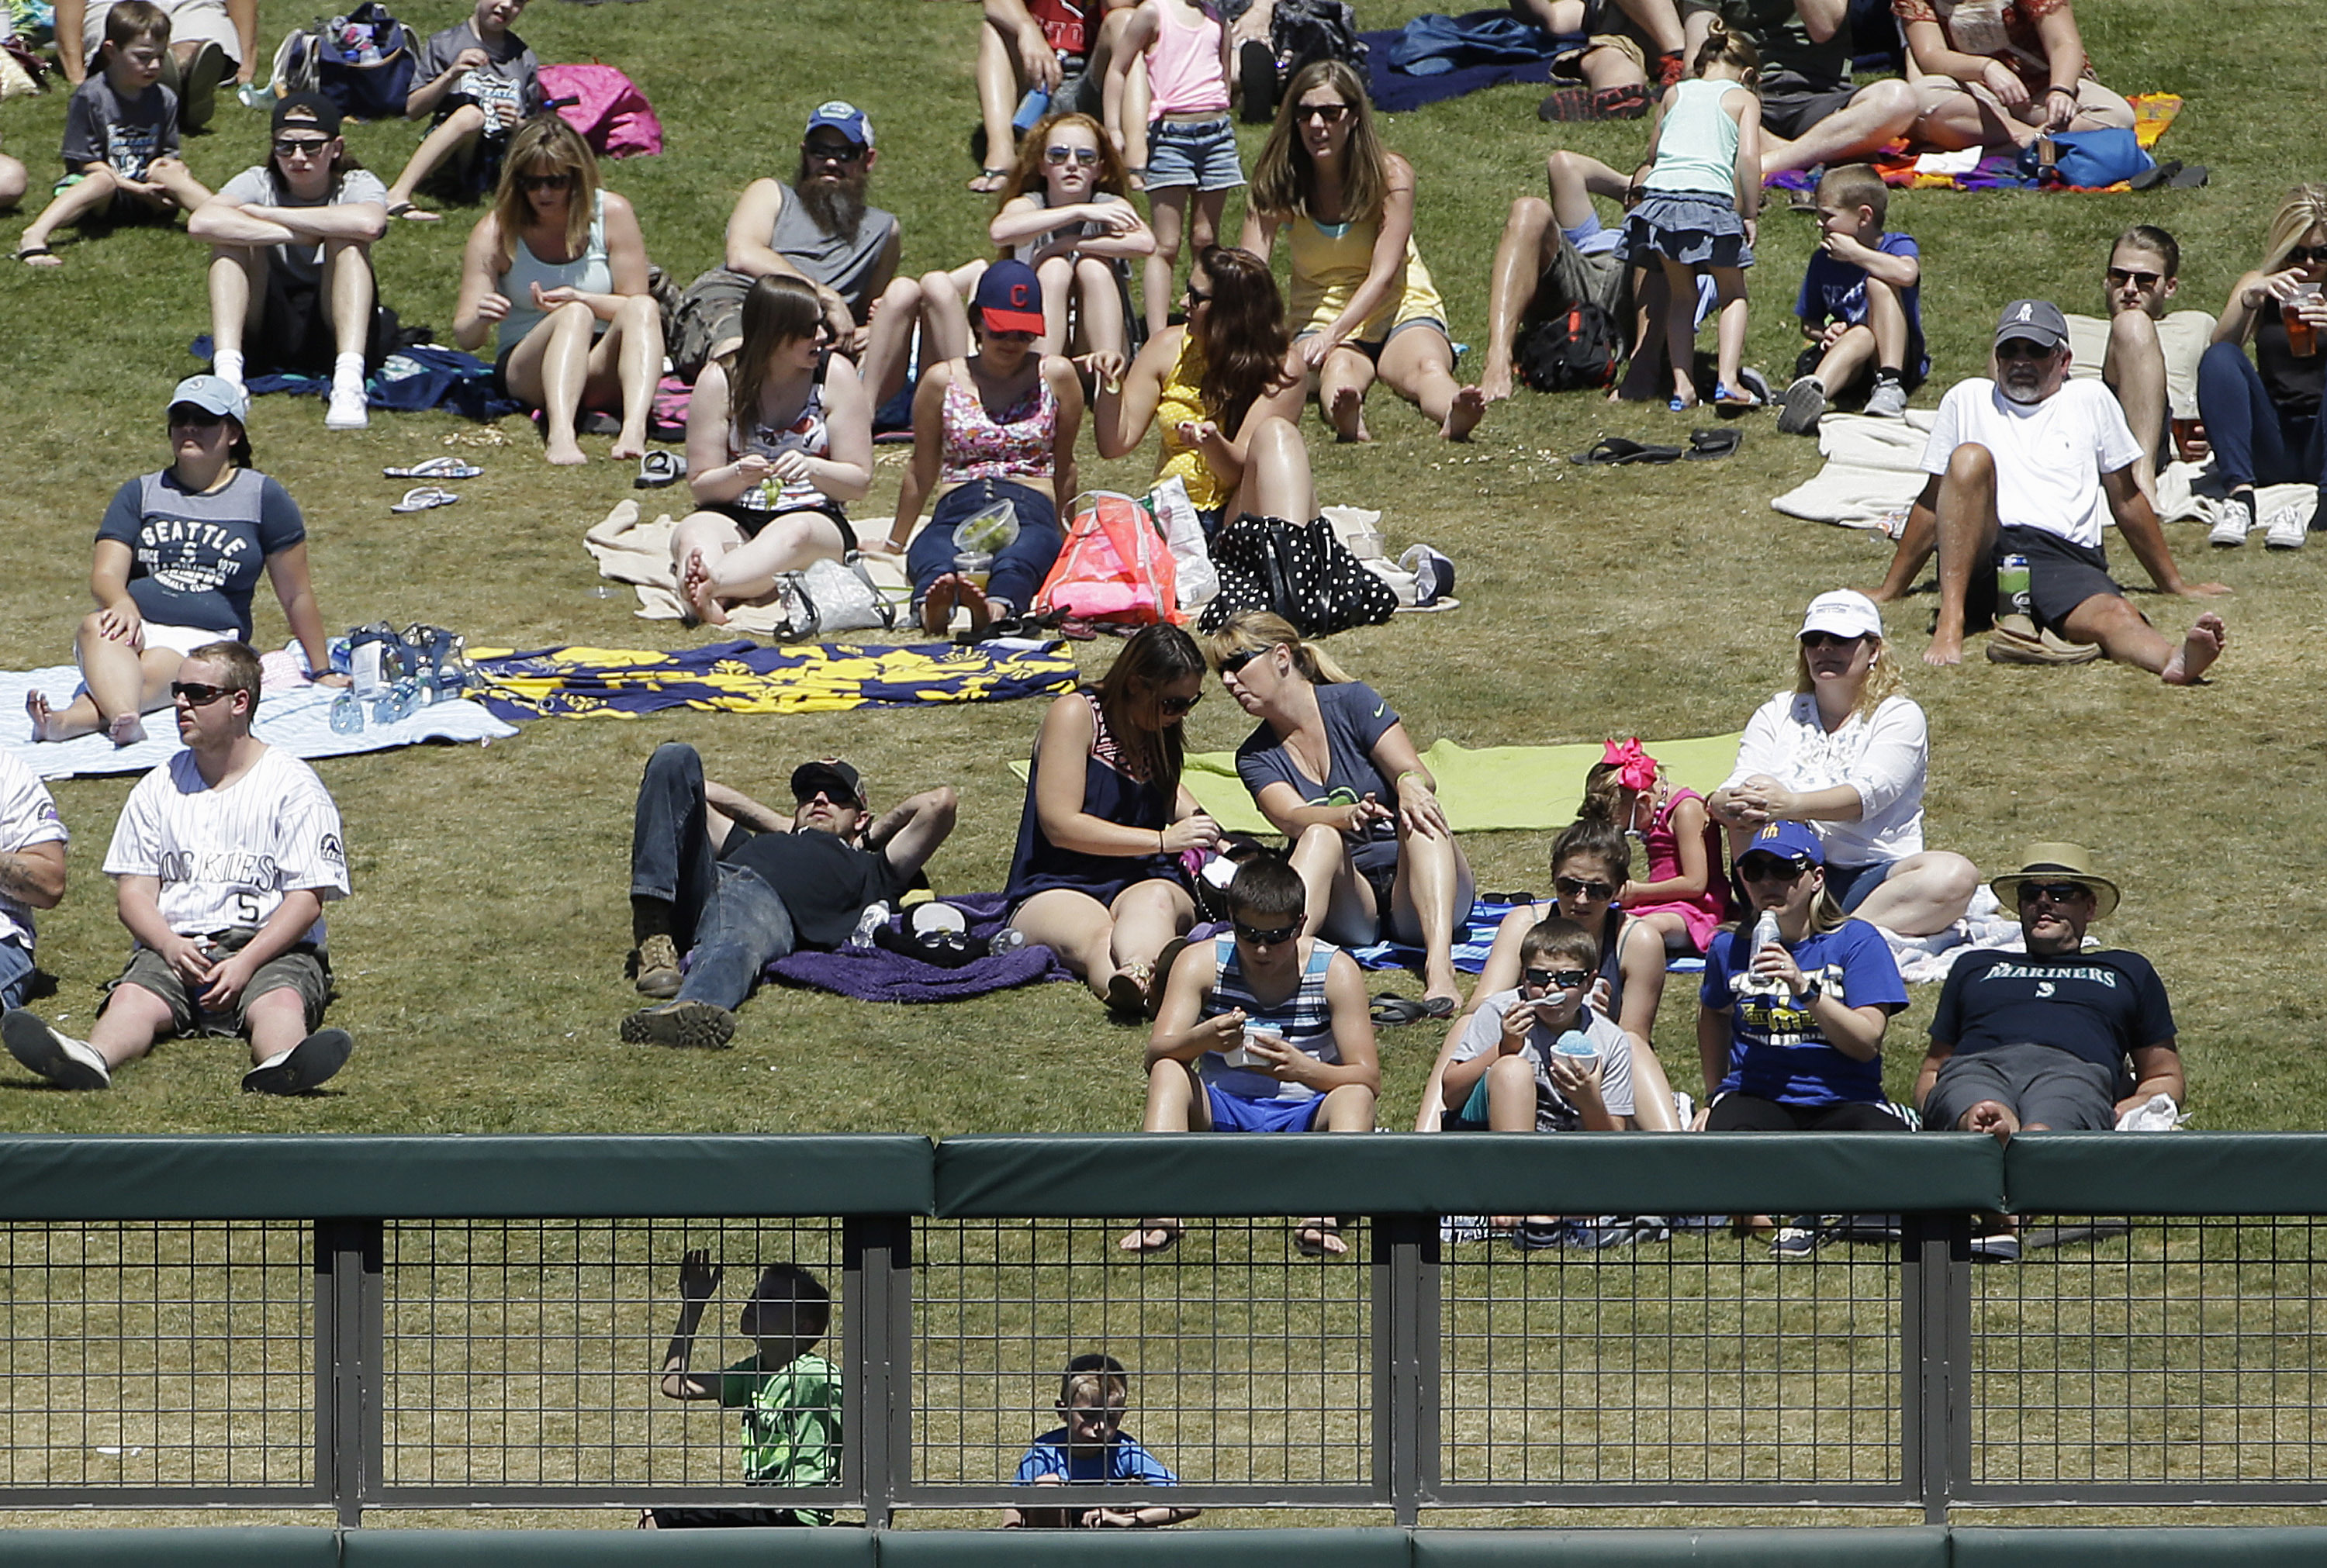 Fans watch from the outfield lawn during the third inning of a spring training baseball game between the Colorado Rockies and the Seattle Mariners in Scottsdale, Ariz., Saturday, April 2, 2016. (AP Photo/Jeff Chiu)